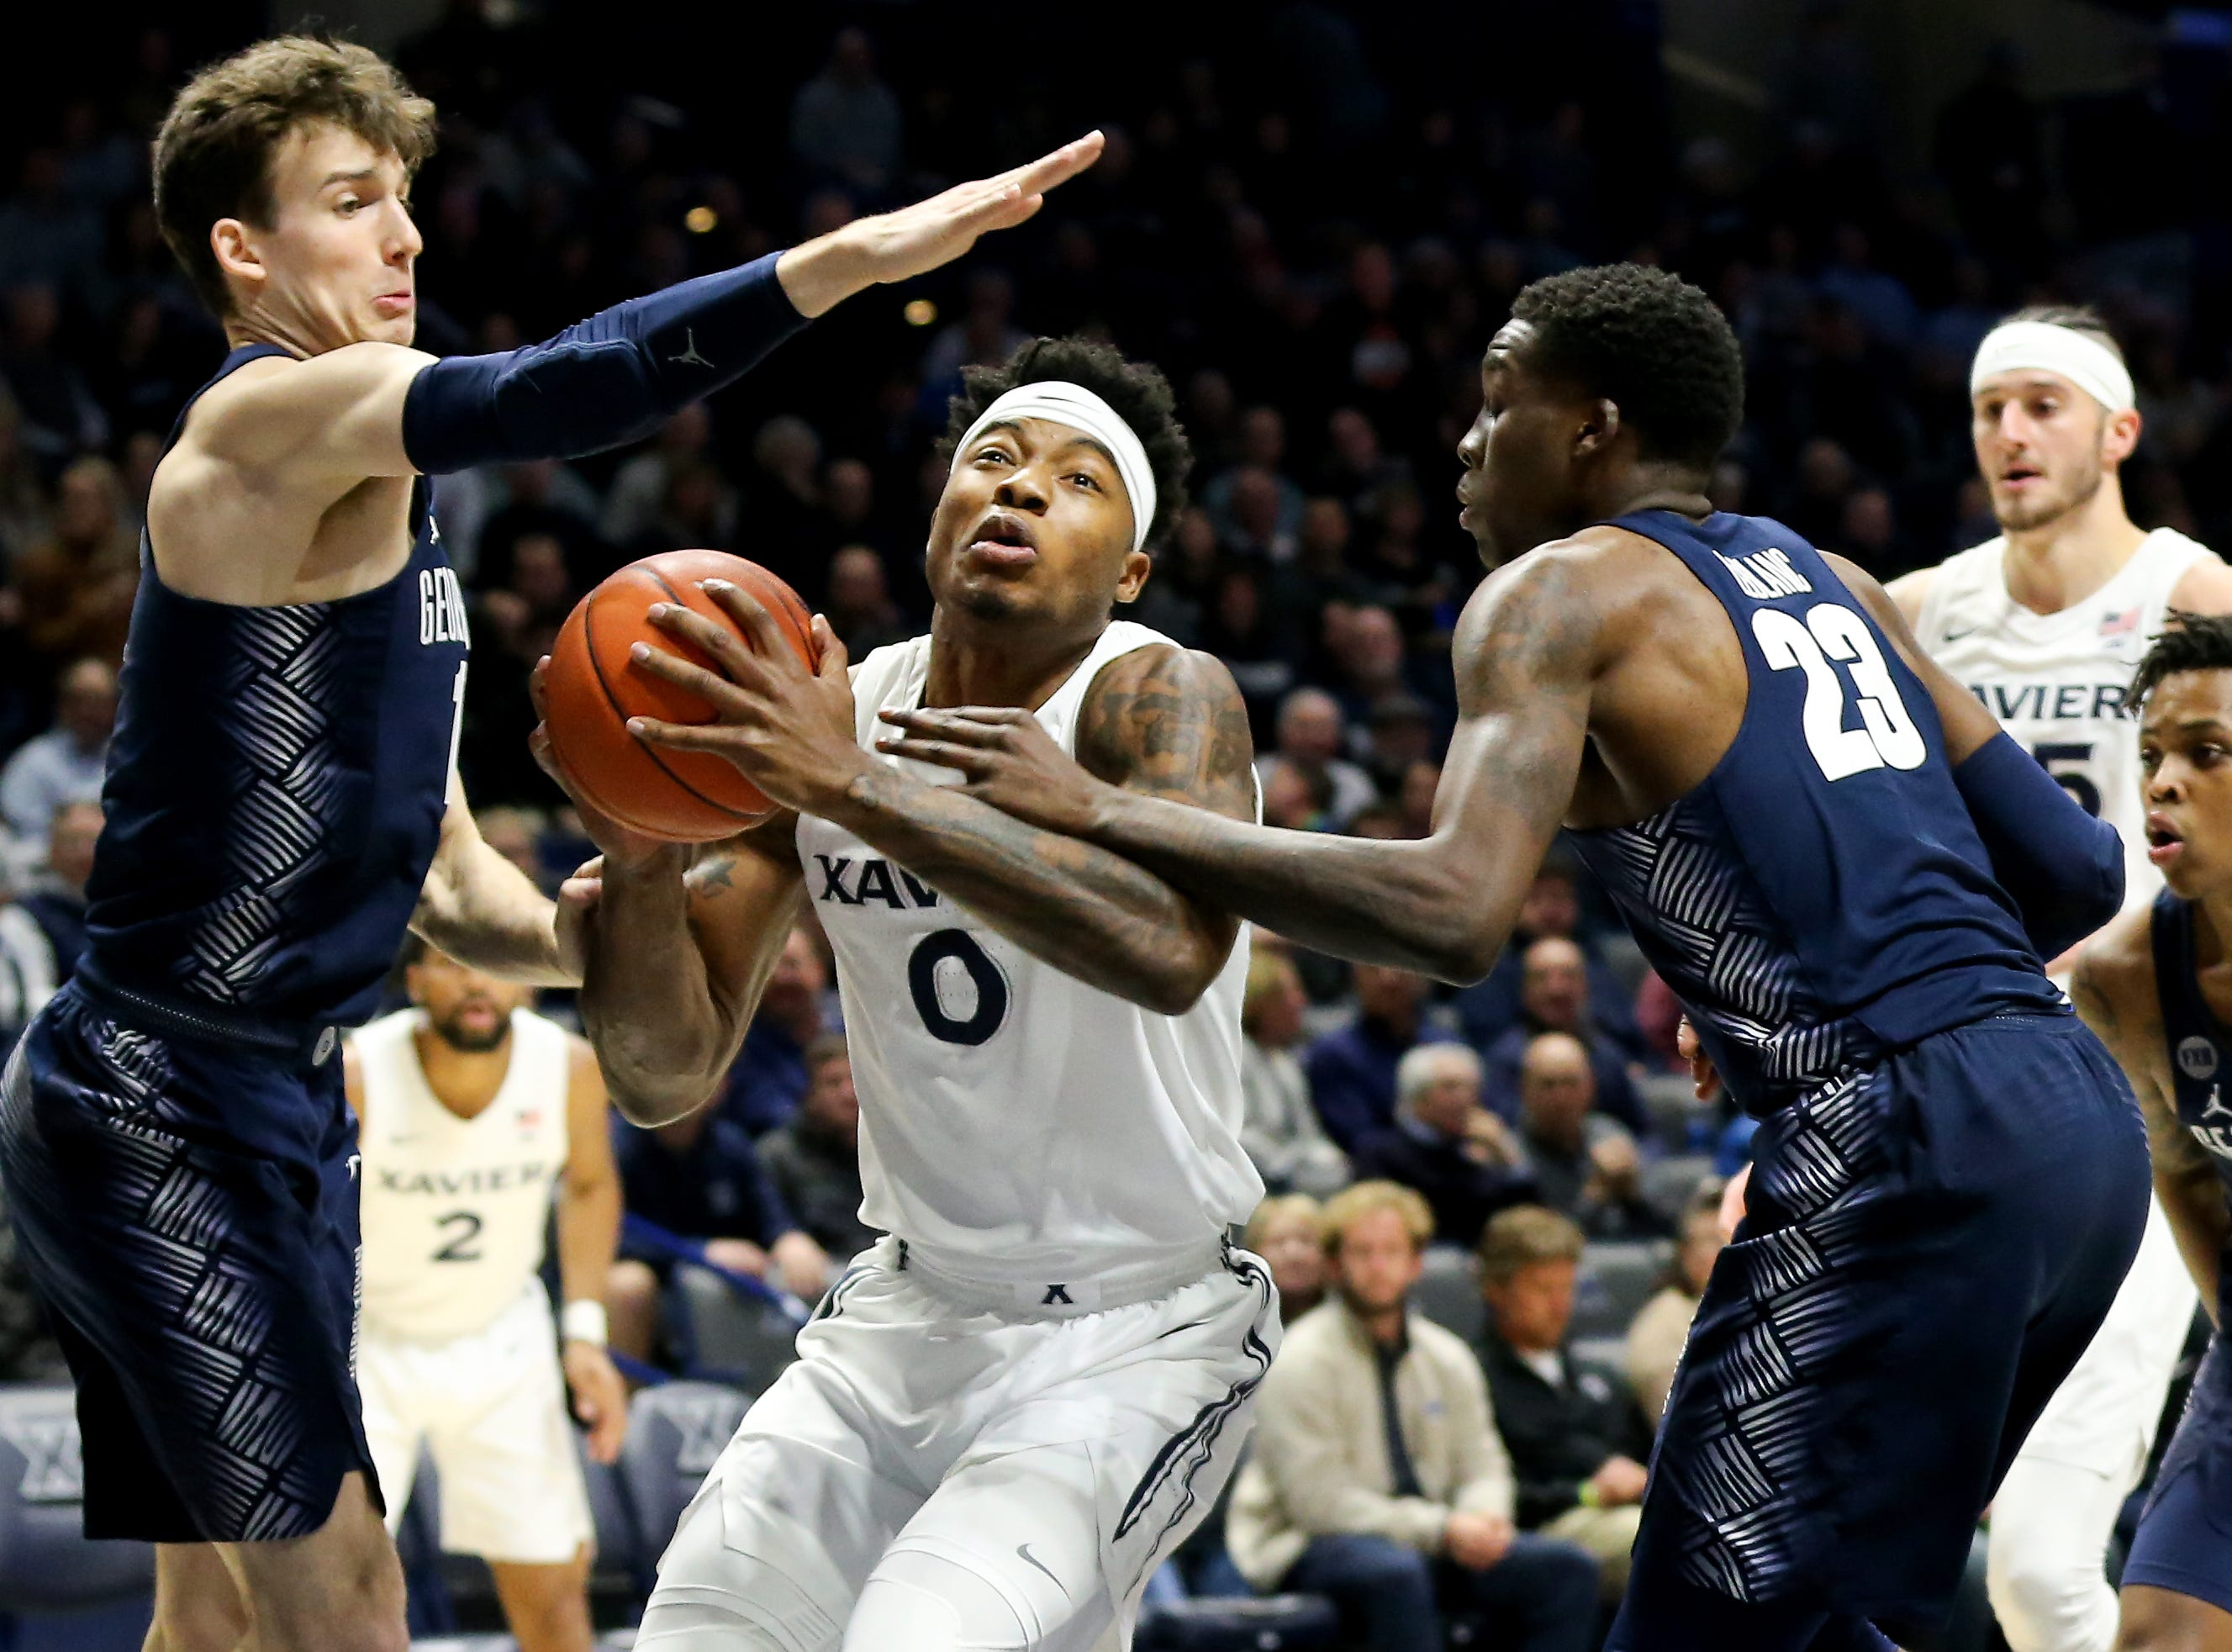 Xavier Musketeers forward Tyrique Jones (0) splits two defenders in the first half of an NCAA basketball game against the Georgetown Hoyas, Wednesday, Jan. 9, 2019, at the Cintas Center in Cincinnati.